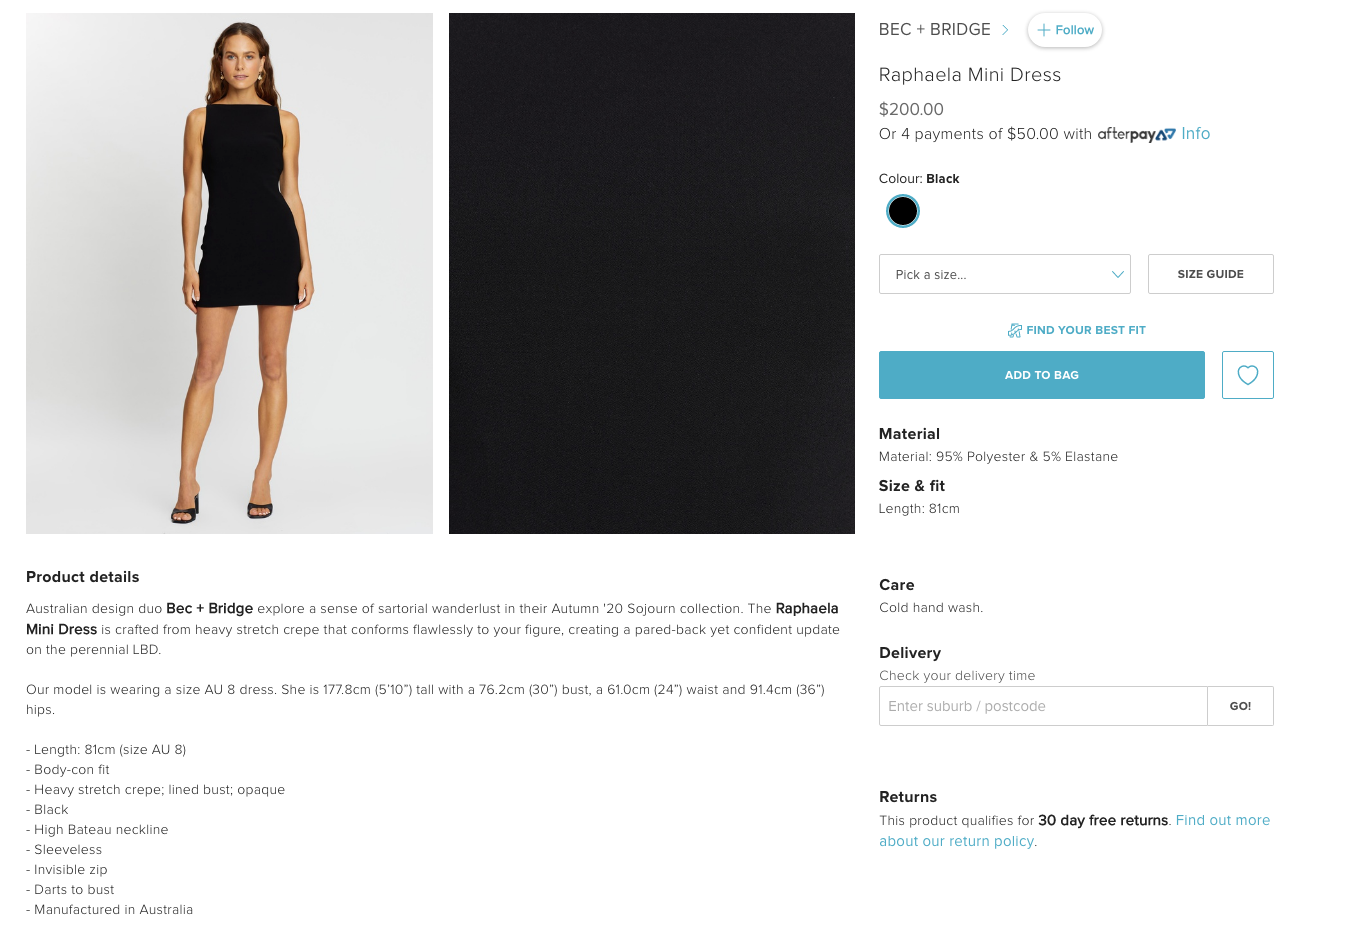 Product description examples for a little black dress from The Iconic